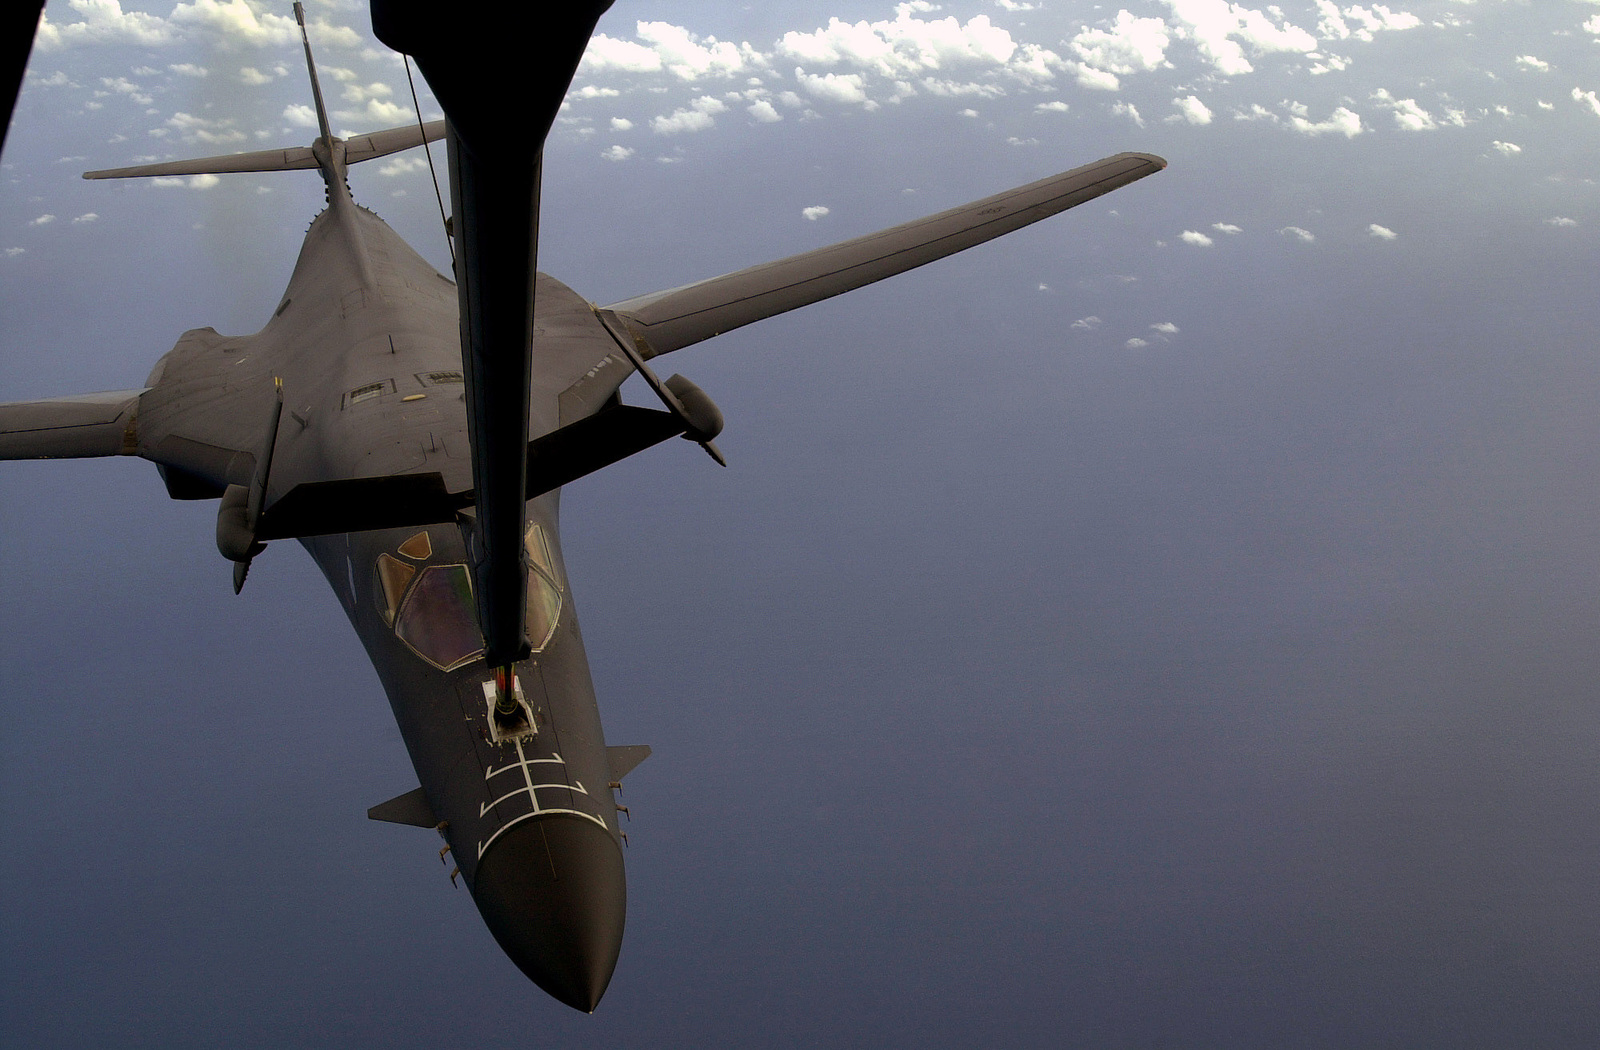 A B1-B Lancer bomber connects with and receives fuel from a KC-10 Extender over the Indian Ocean prior to a bombing sortie into Afghanistan for Operation Enduring Freedom. Both aircraft are from the 28th Air Expeditionary Wing. In response to the terrorist attacks on September 11, 2001 at the New York World Trade Center and the Pentagon, President George W. Bush initiated Operation ENDURING FREEDOM in support of the Global War on Terrorism (GWOT), fighting terrorism abroad